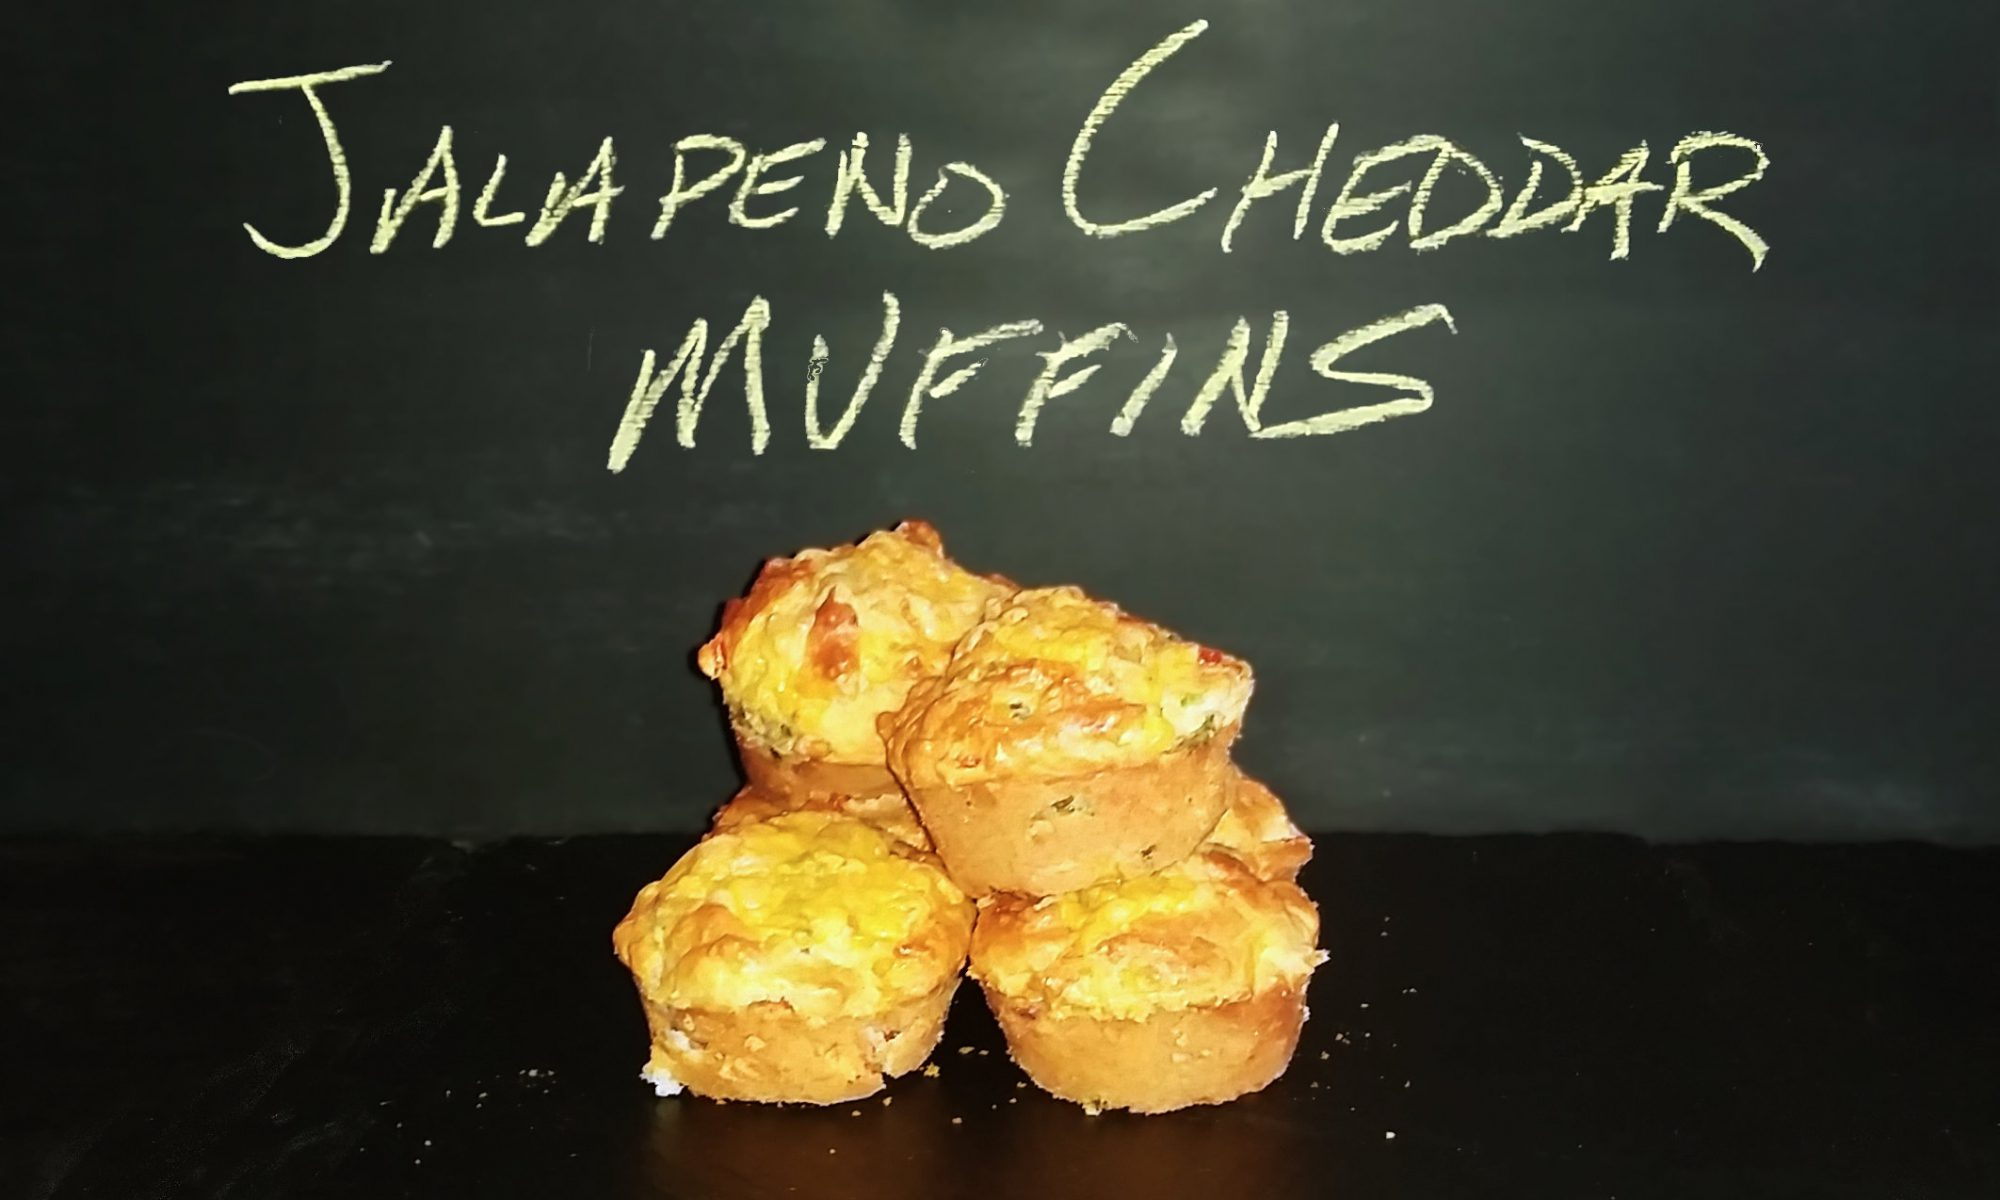 jalapeno cheddar muffin image